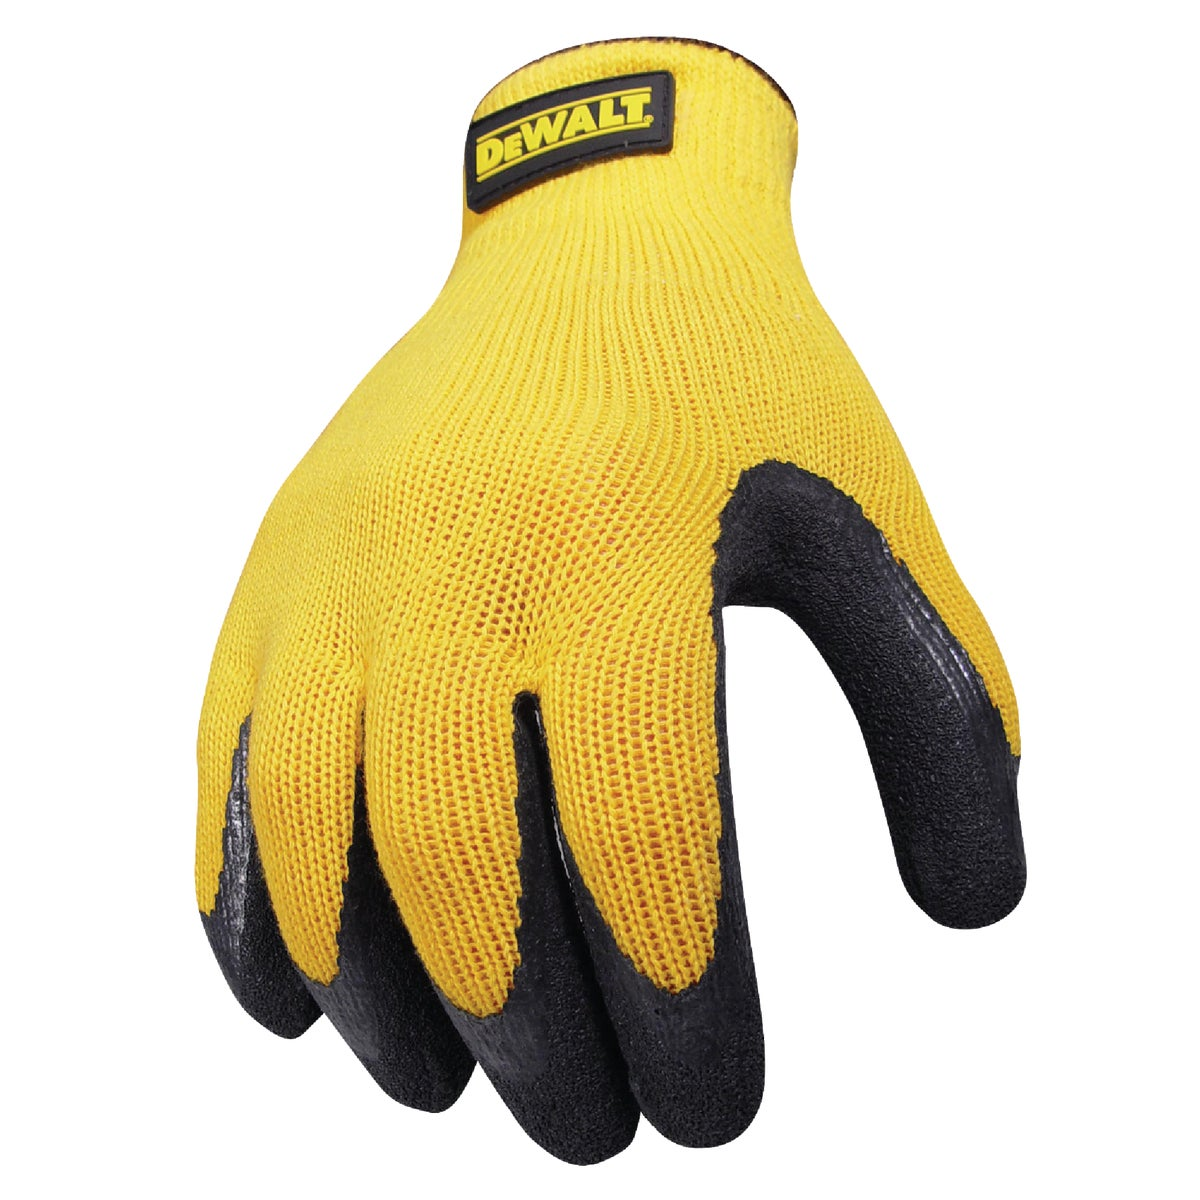 M RUBBER GRIPPER GLOVE